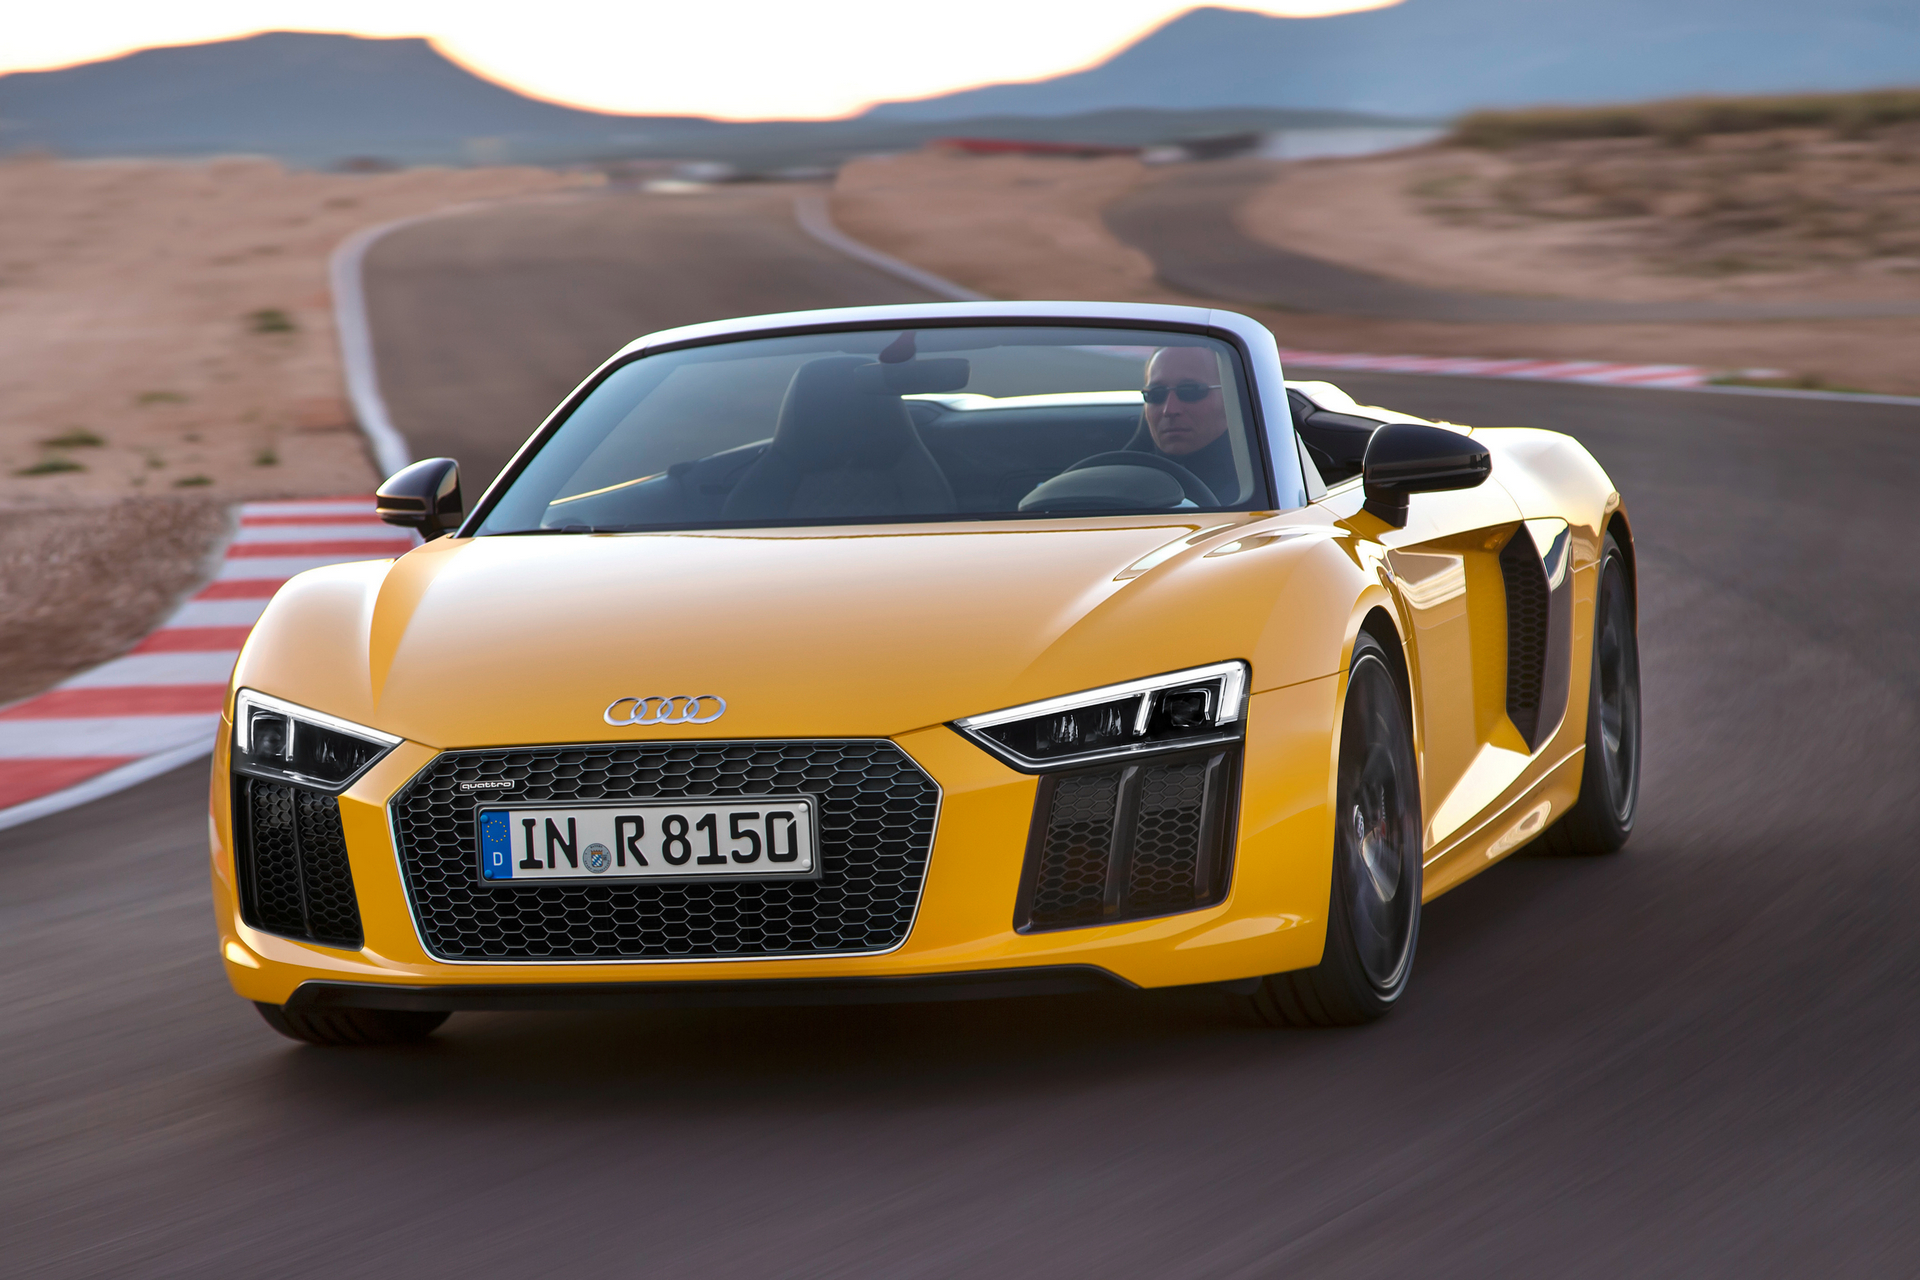 How Much Does An Audi R Cost Carrrs Auto Portal - Audi cost